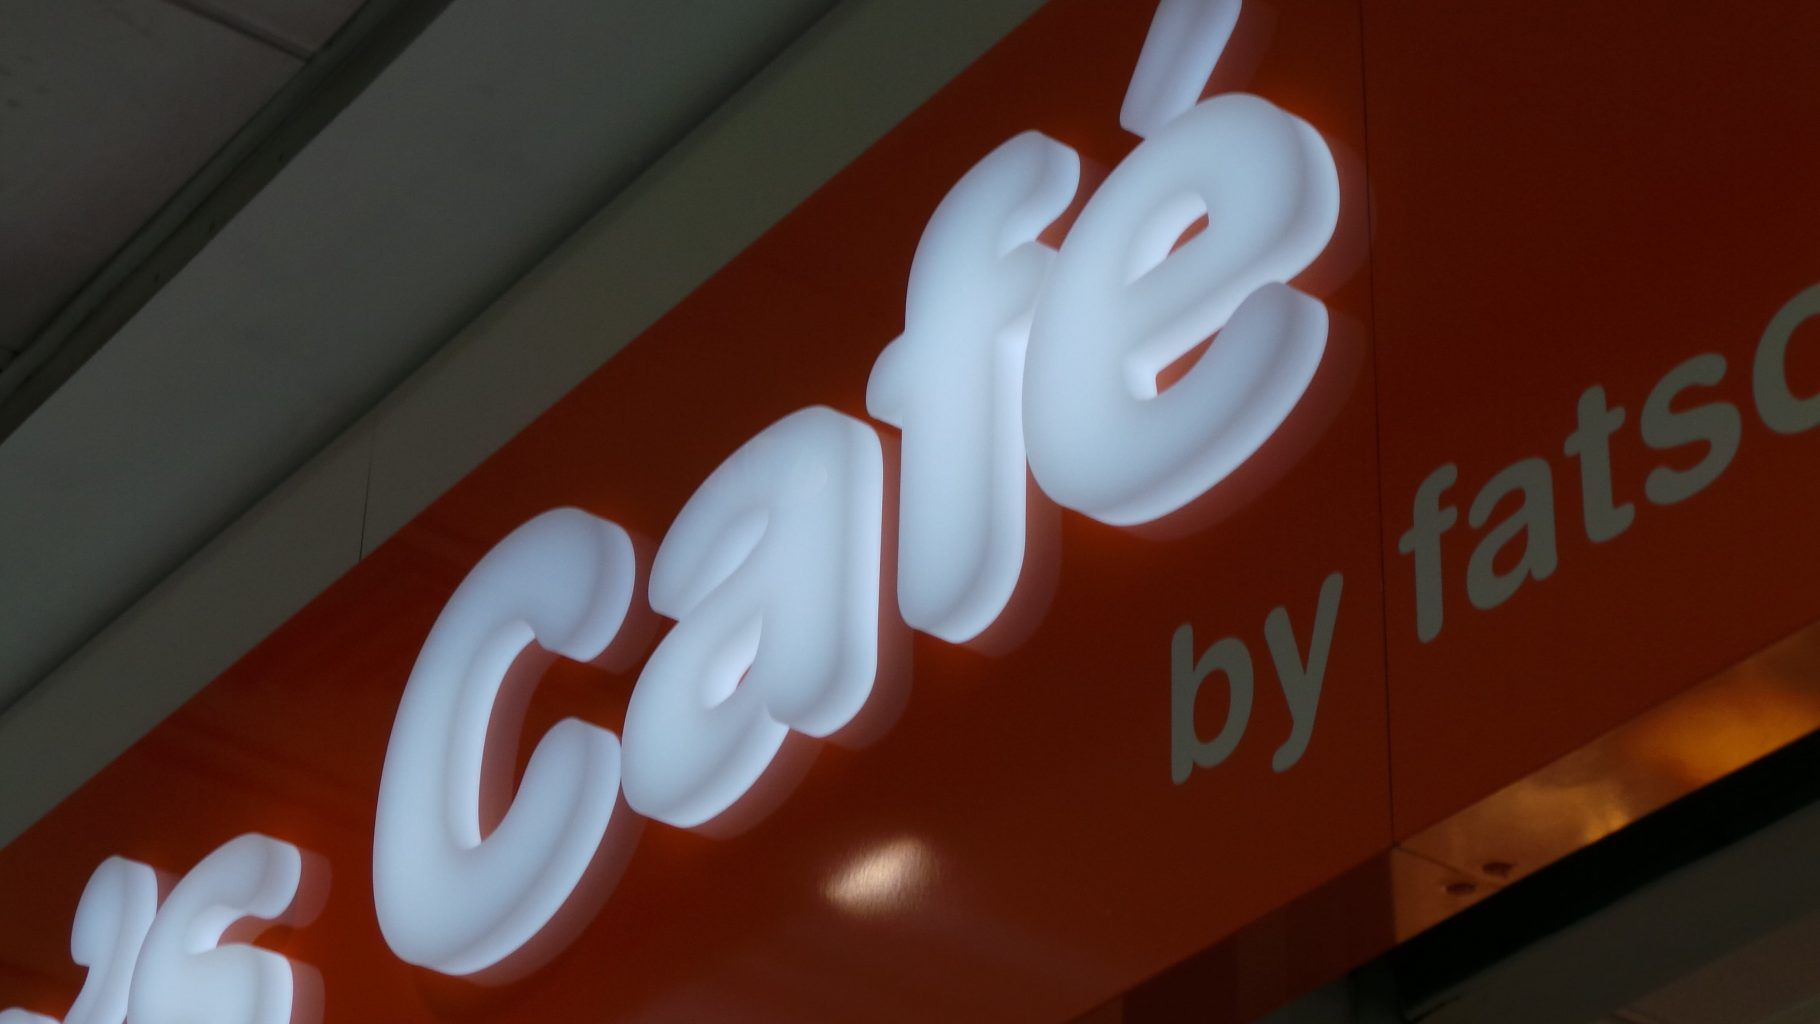 ROWNTREE CAFE ACRYLIC LETTERS